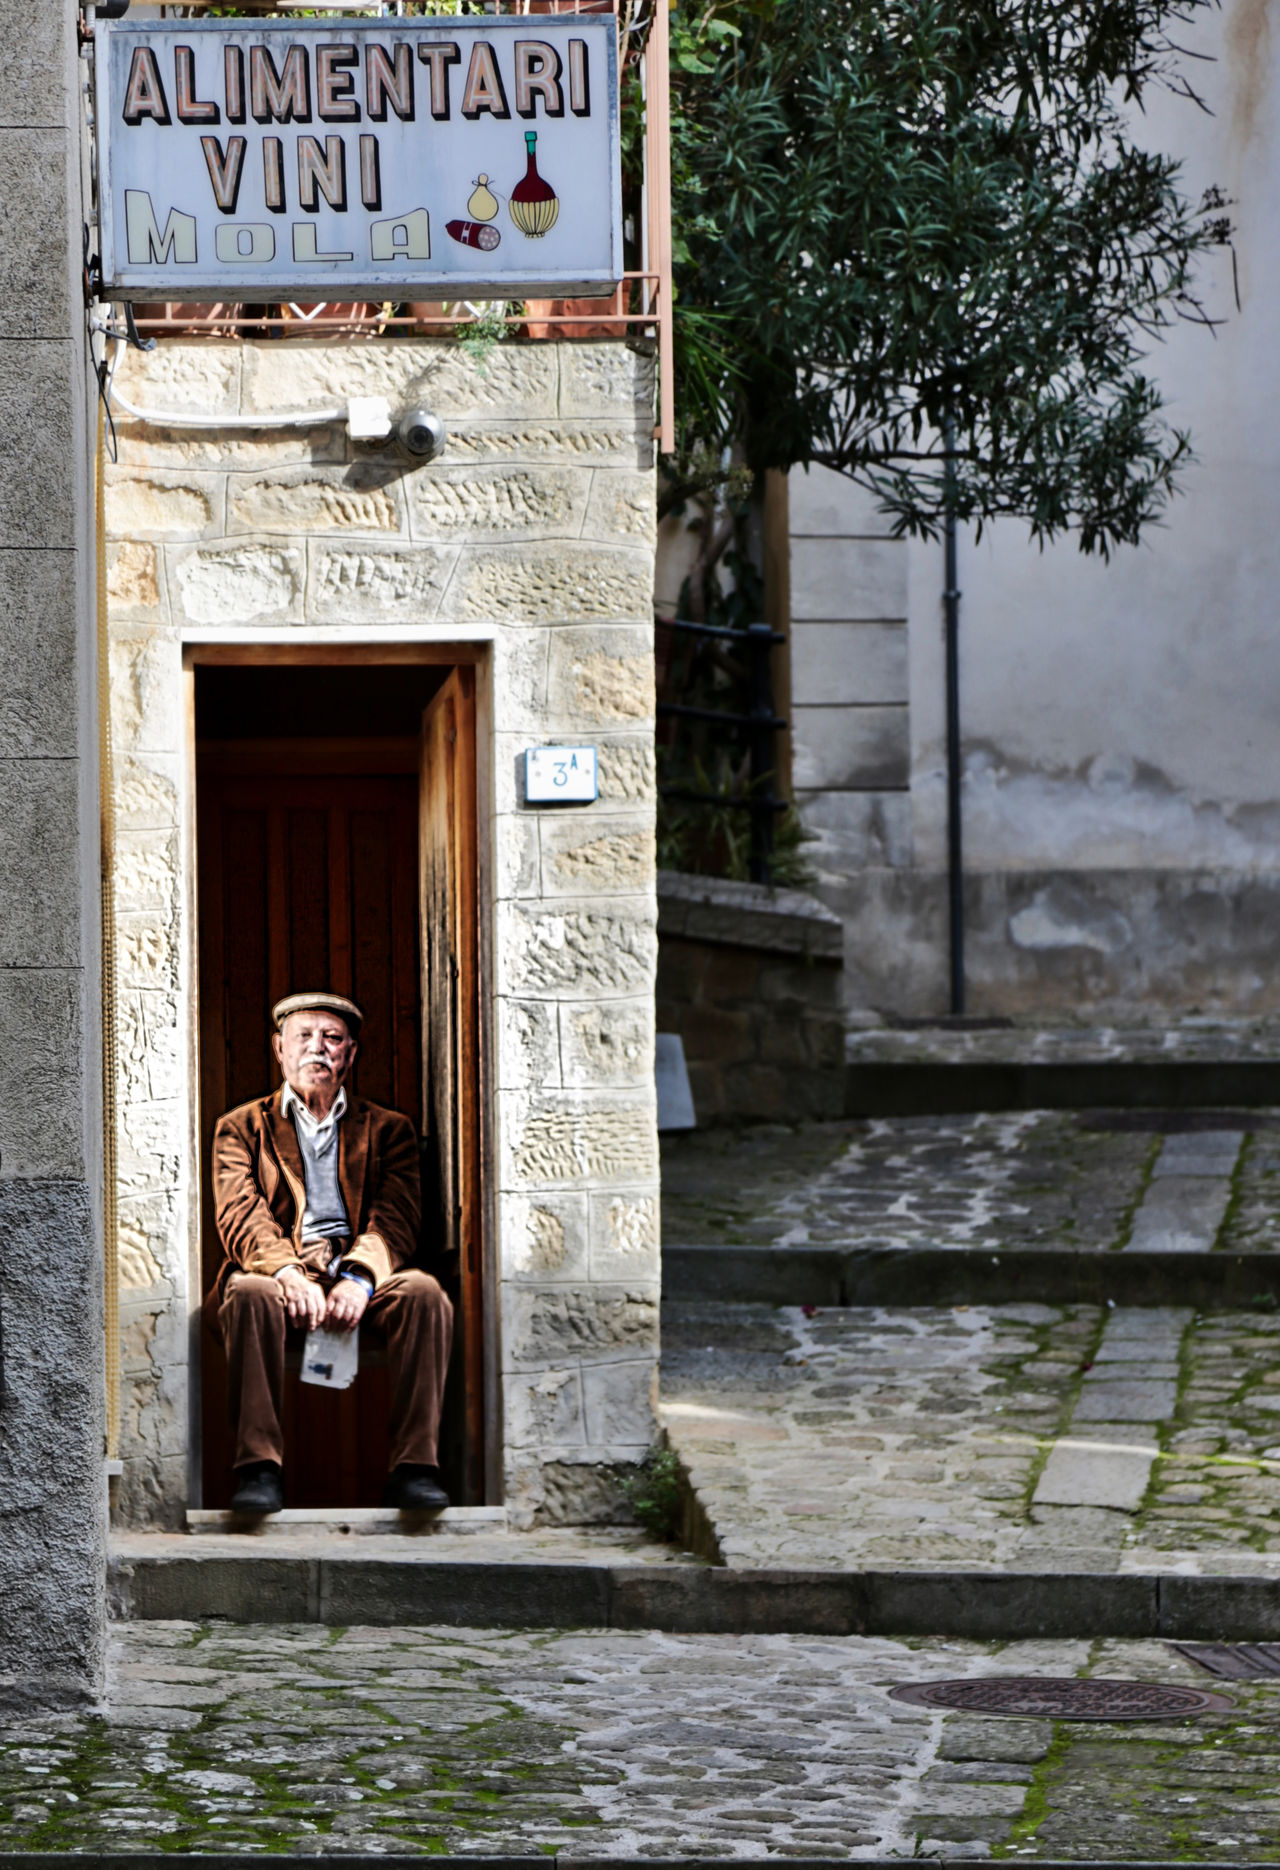 StandBy Architecture Building Exterior Italy Oldman Outdoors People Sicily Smiling